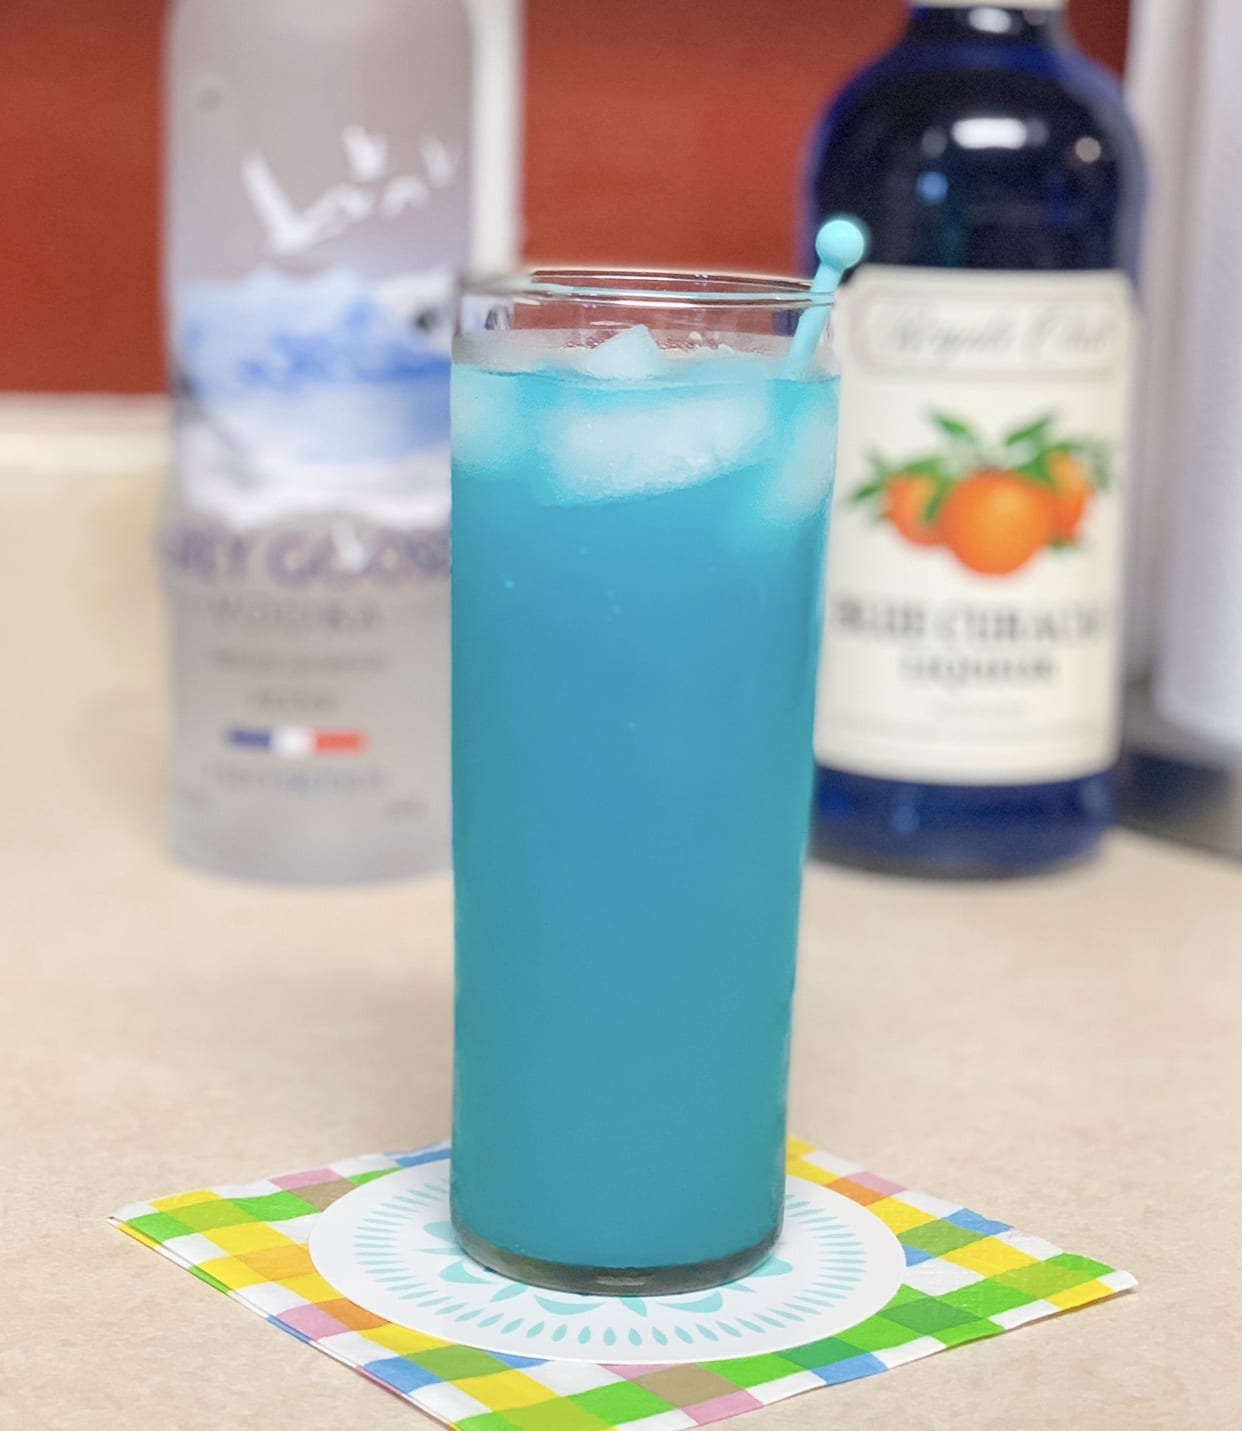 How To Make a Blue Lagoon